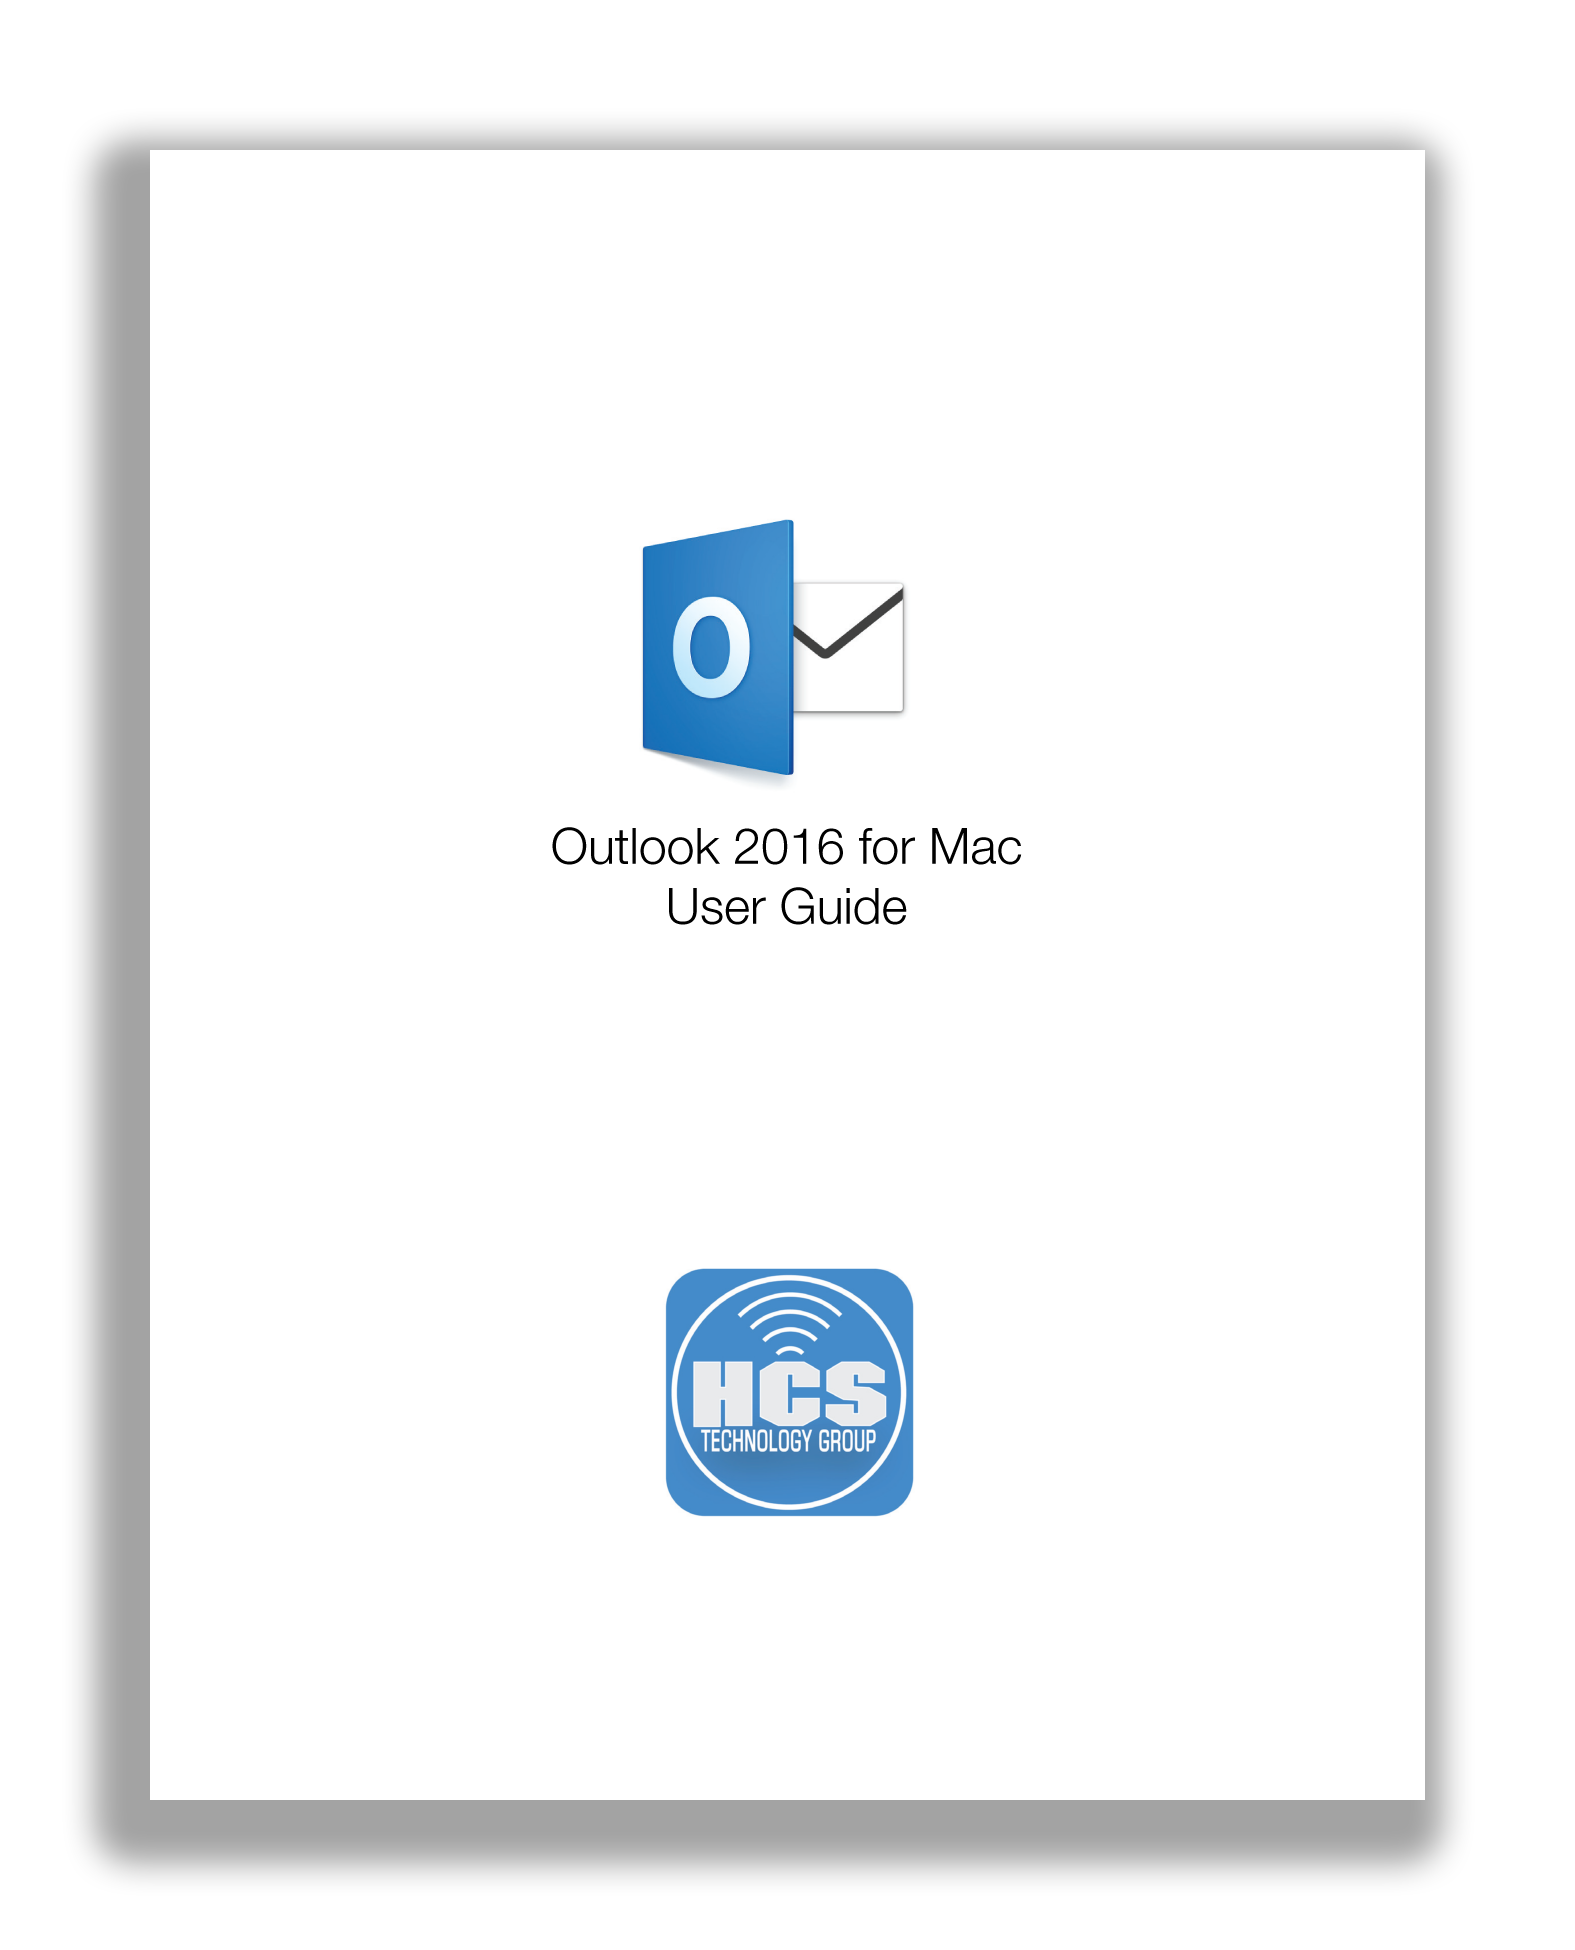 Outlook 2016 for Mac cover